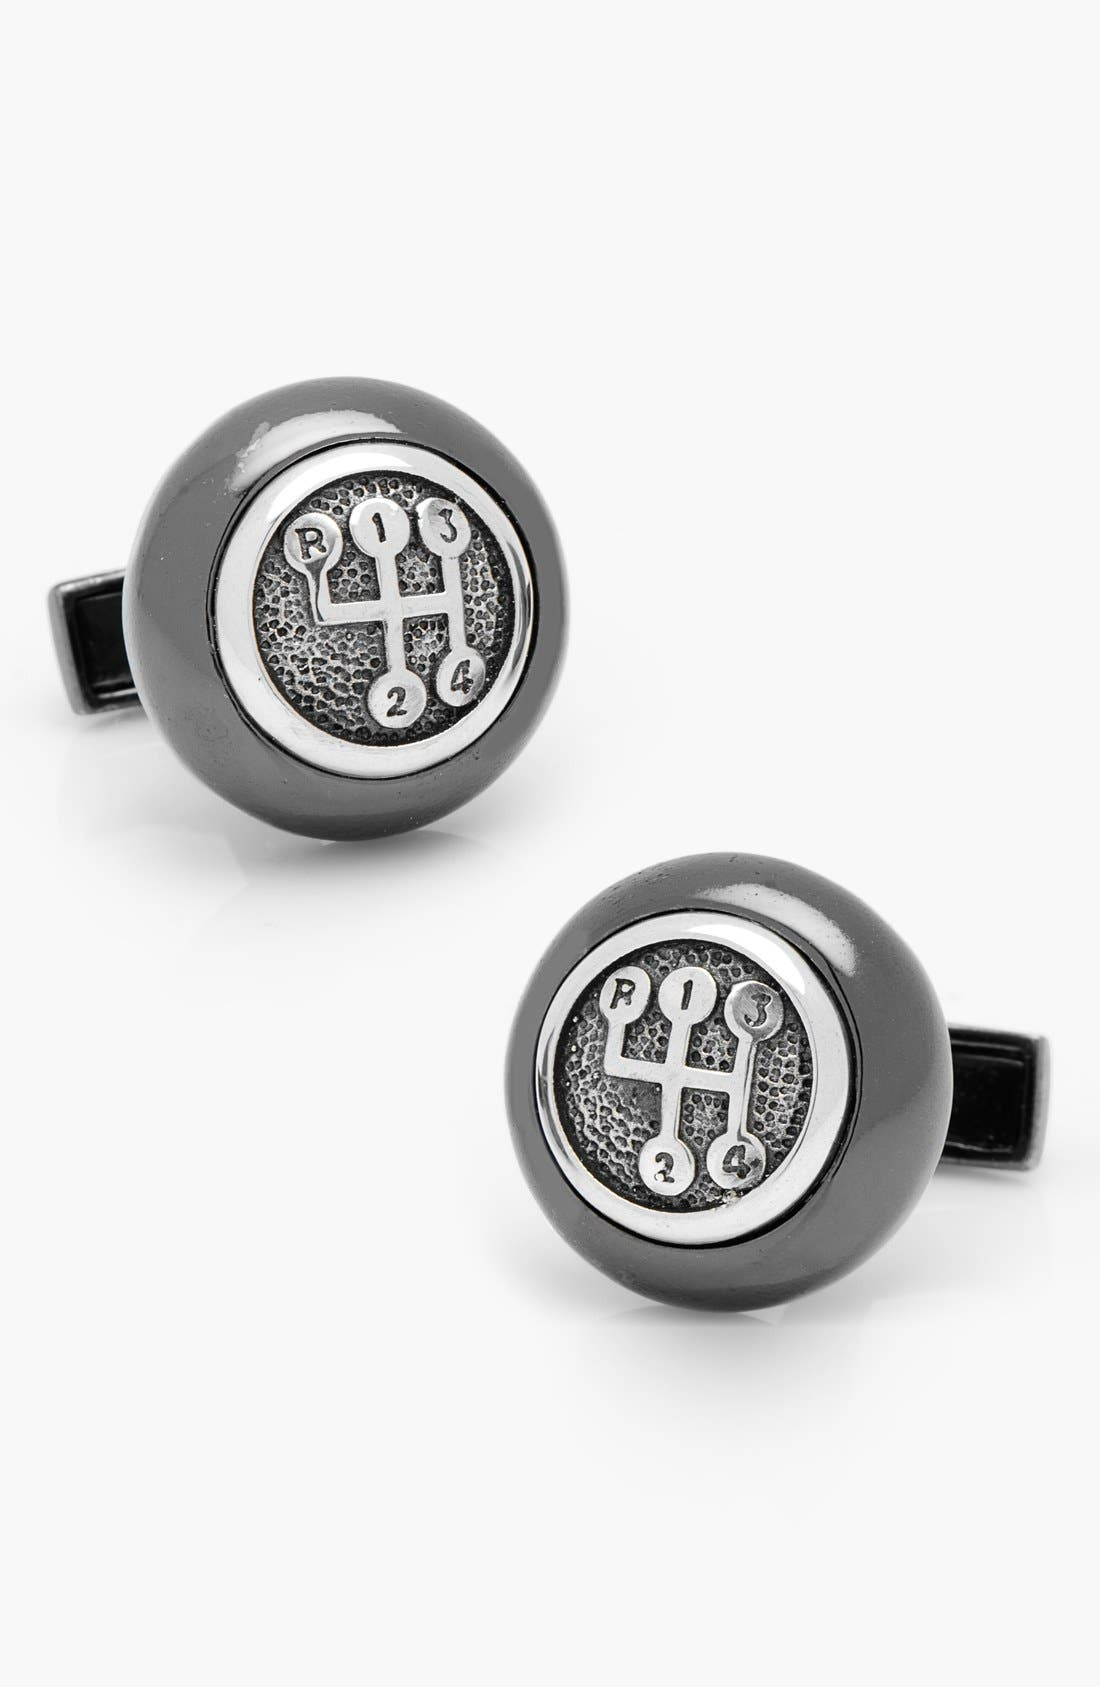 Main Image - Ox and Bull Trading Co. Gear Shifter Cuff Links